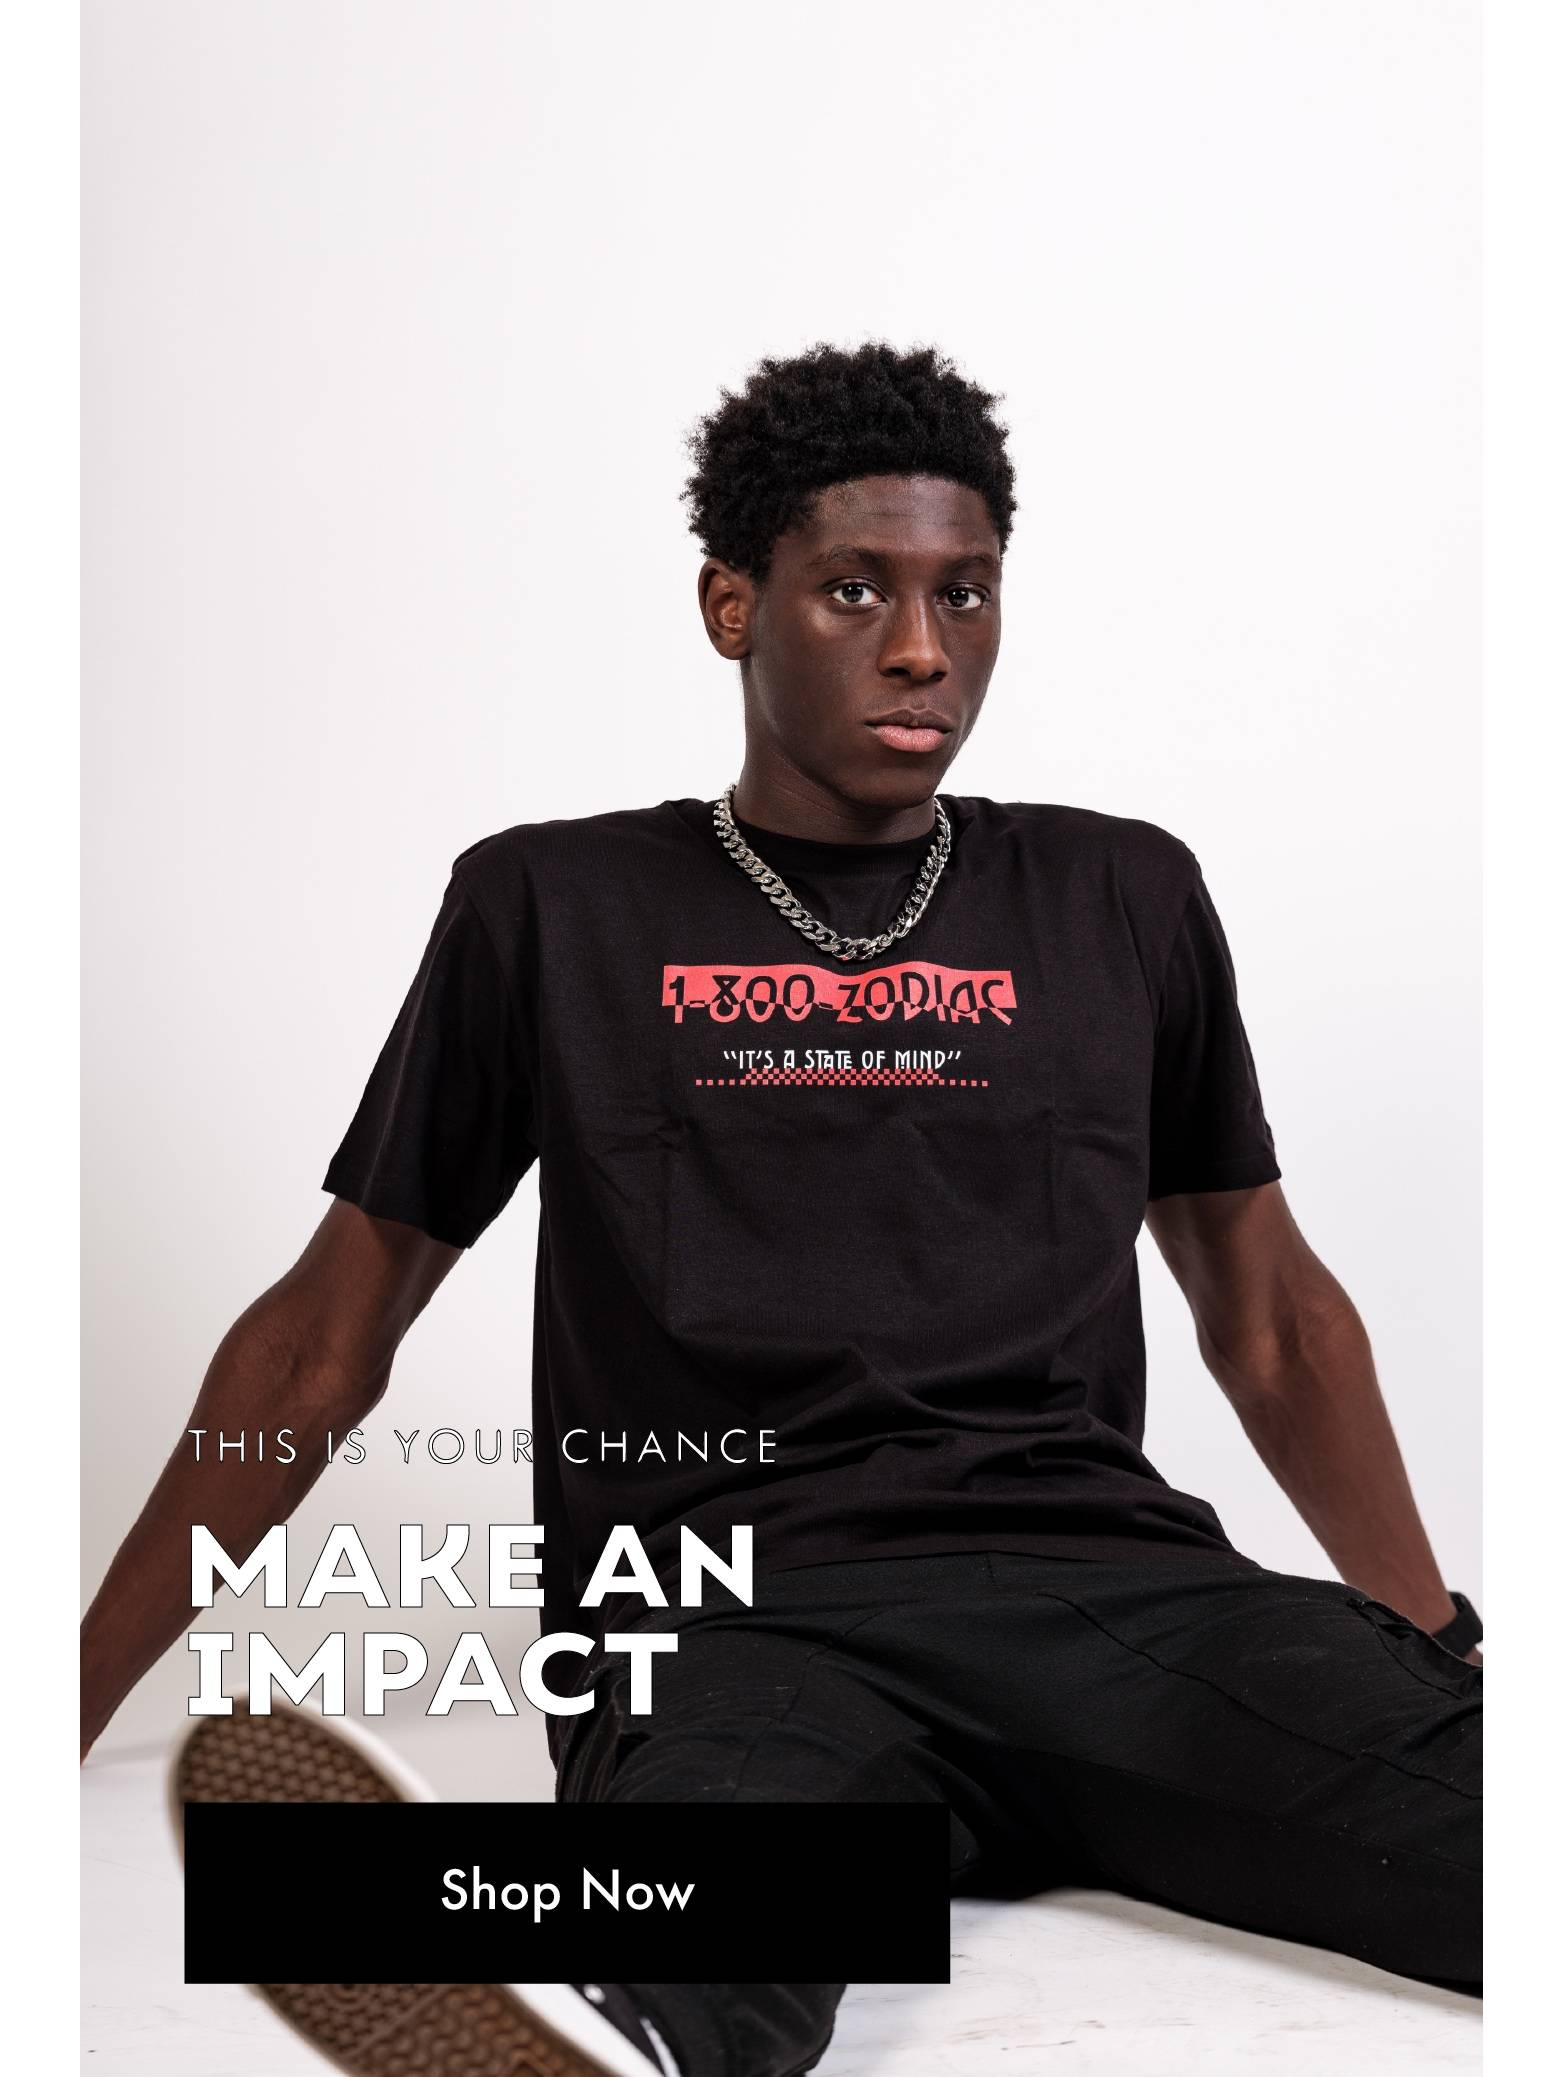 This Is Your Chance Make An Impact - Pre-Order Now